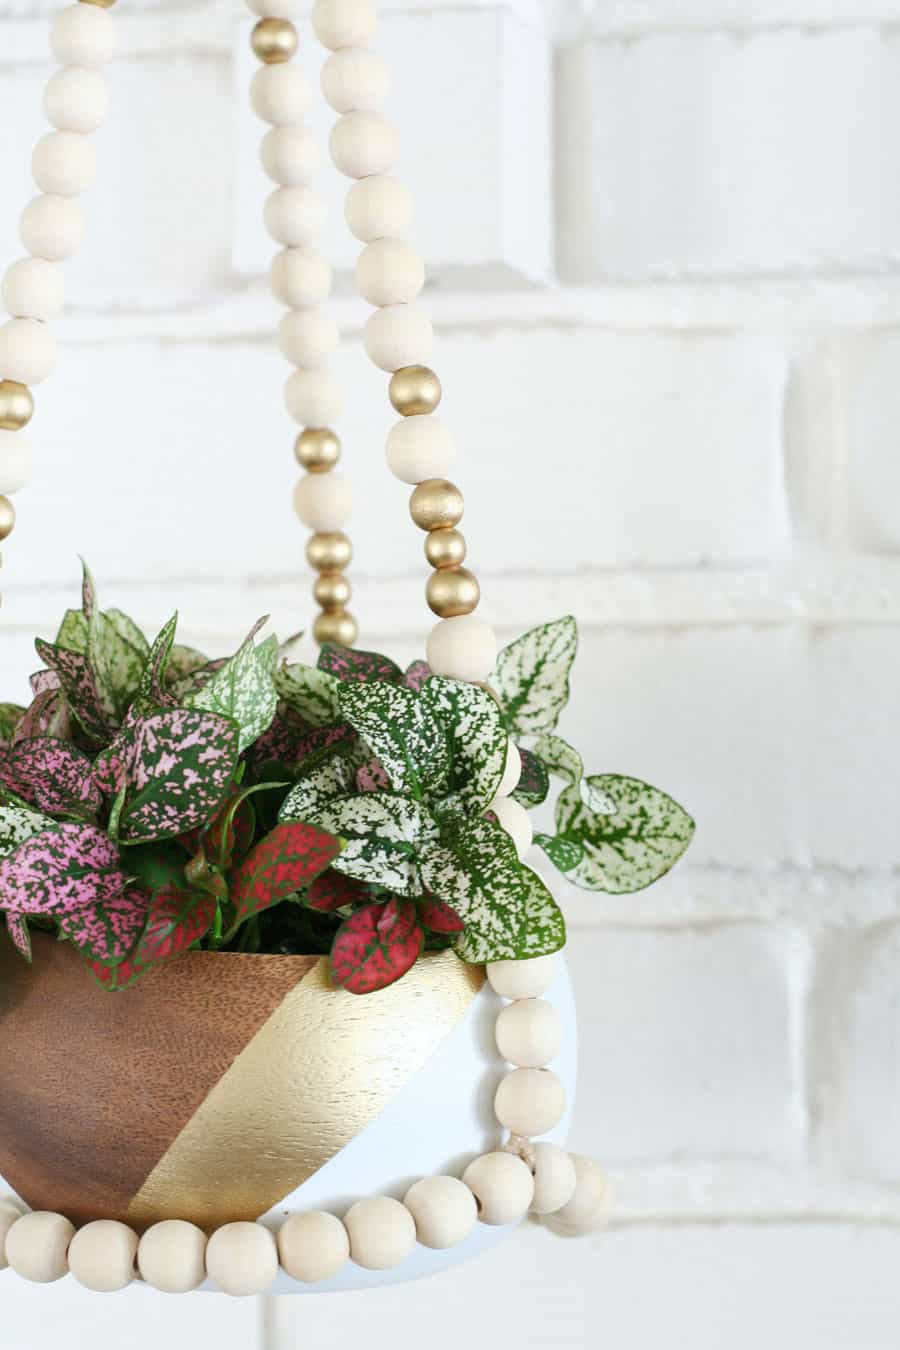 DIY Beaded Hanging Planter